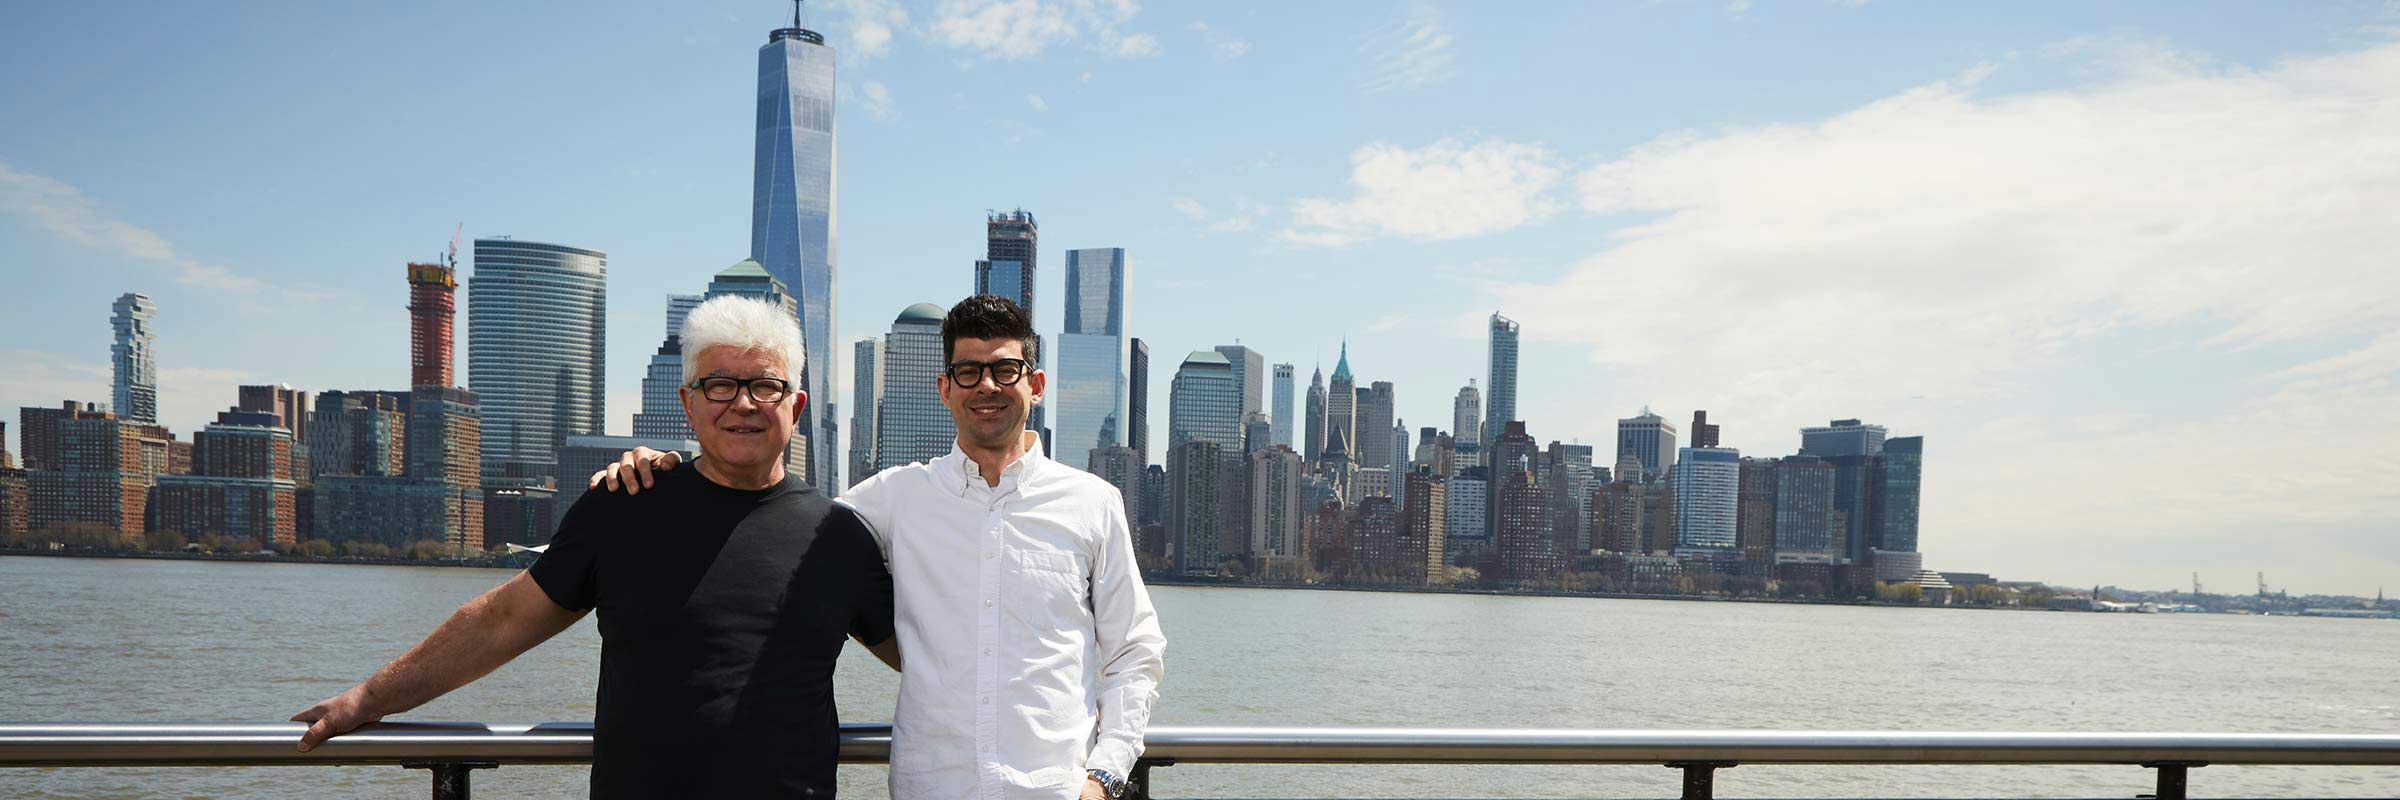 Gregory and Father in front of NYC skyline